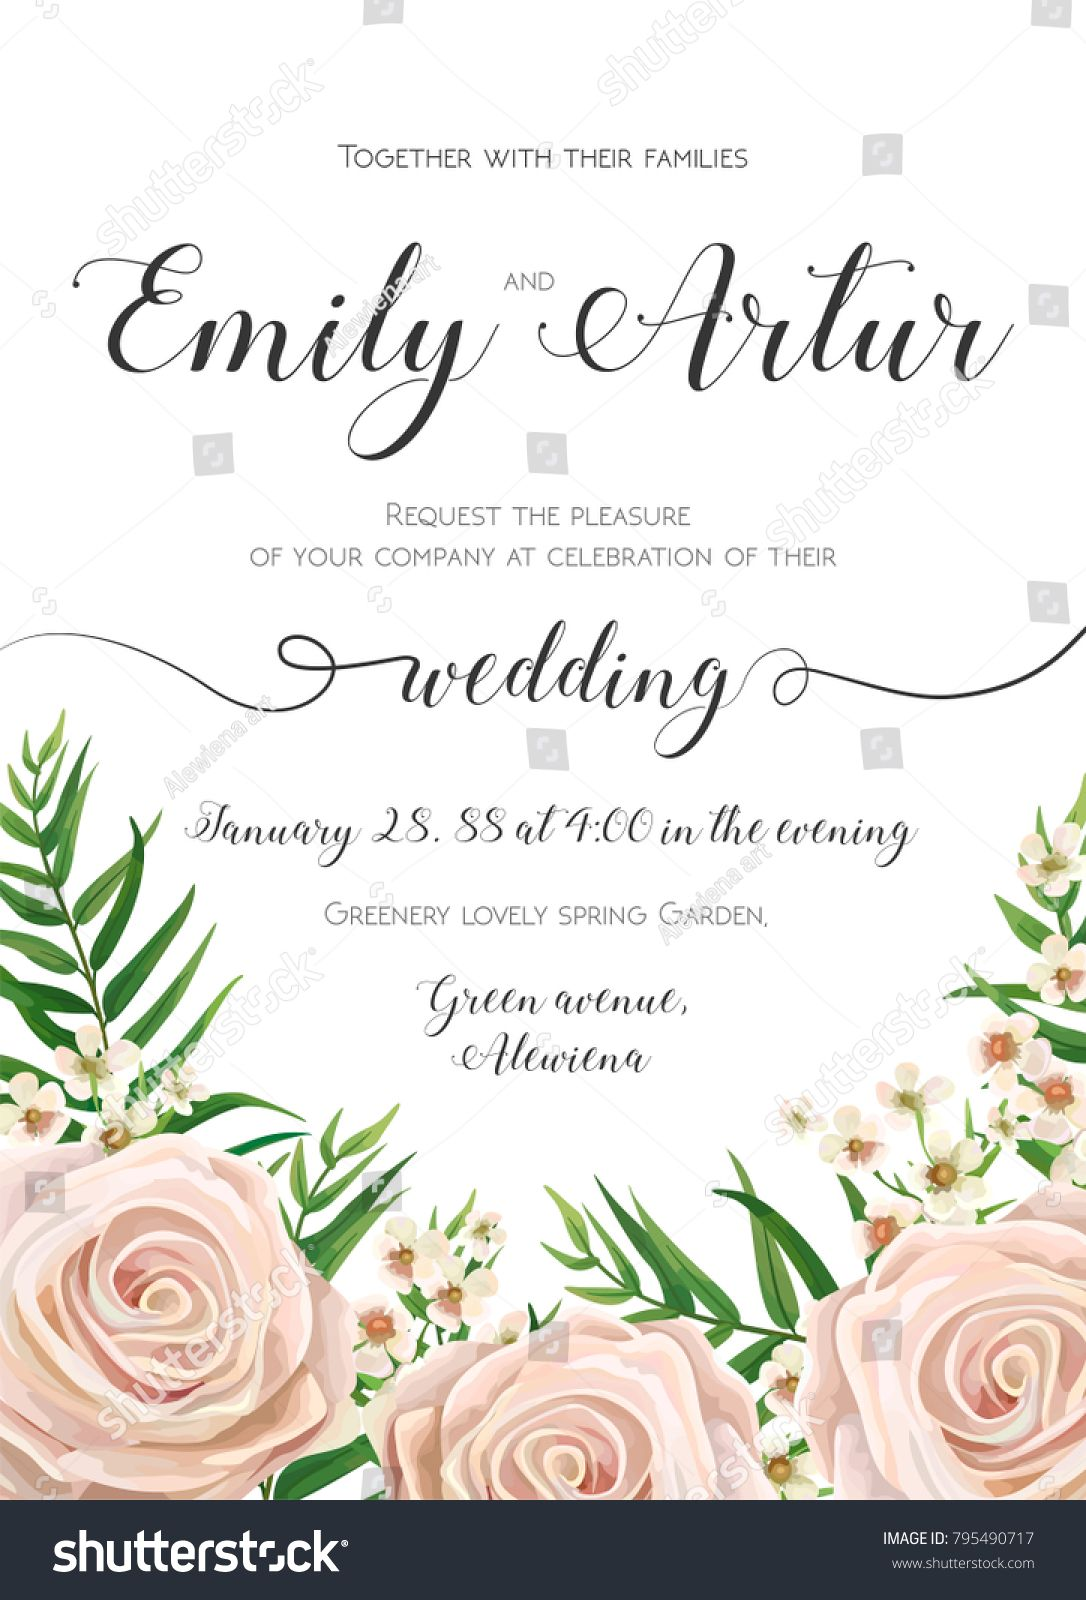 Wedding Invitation Floral Invite Card Design With Creamy White Garden Rose Flowers Wax Flower